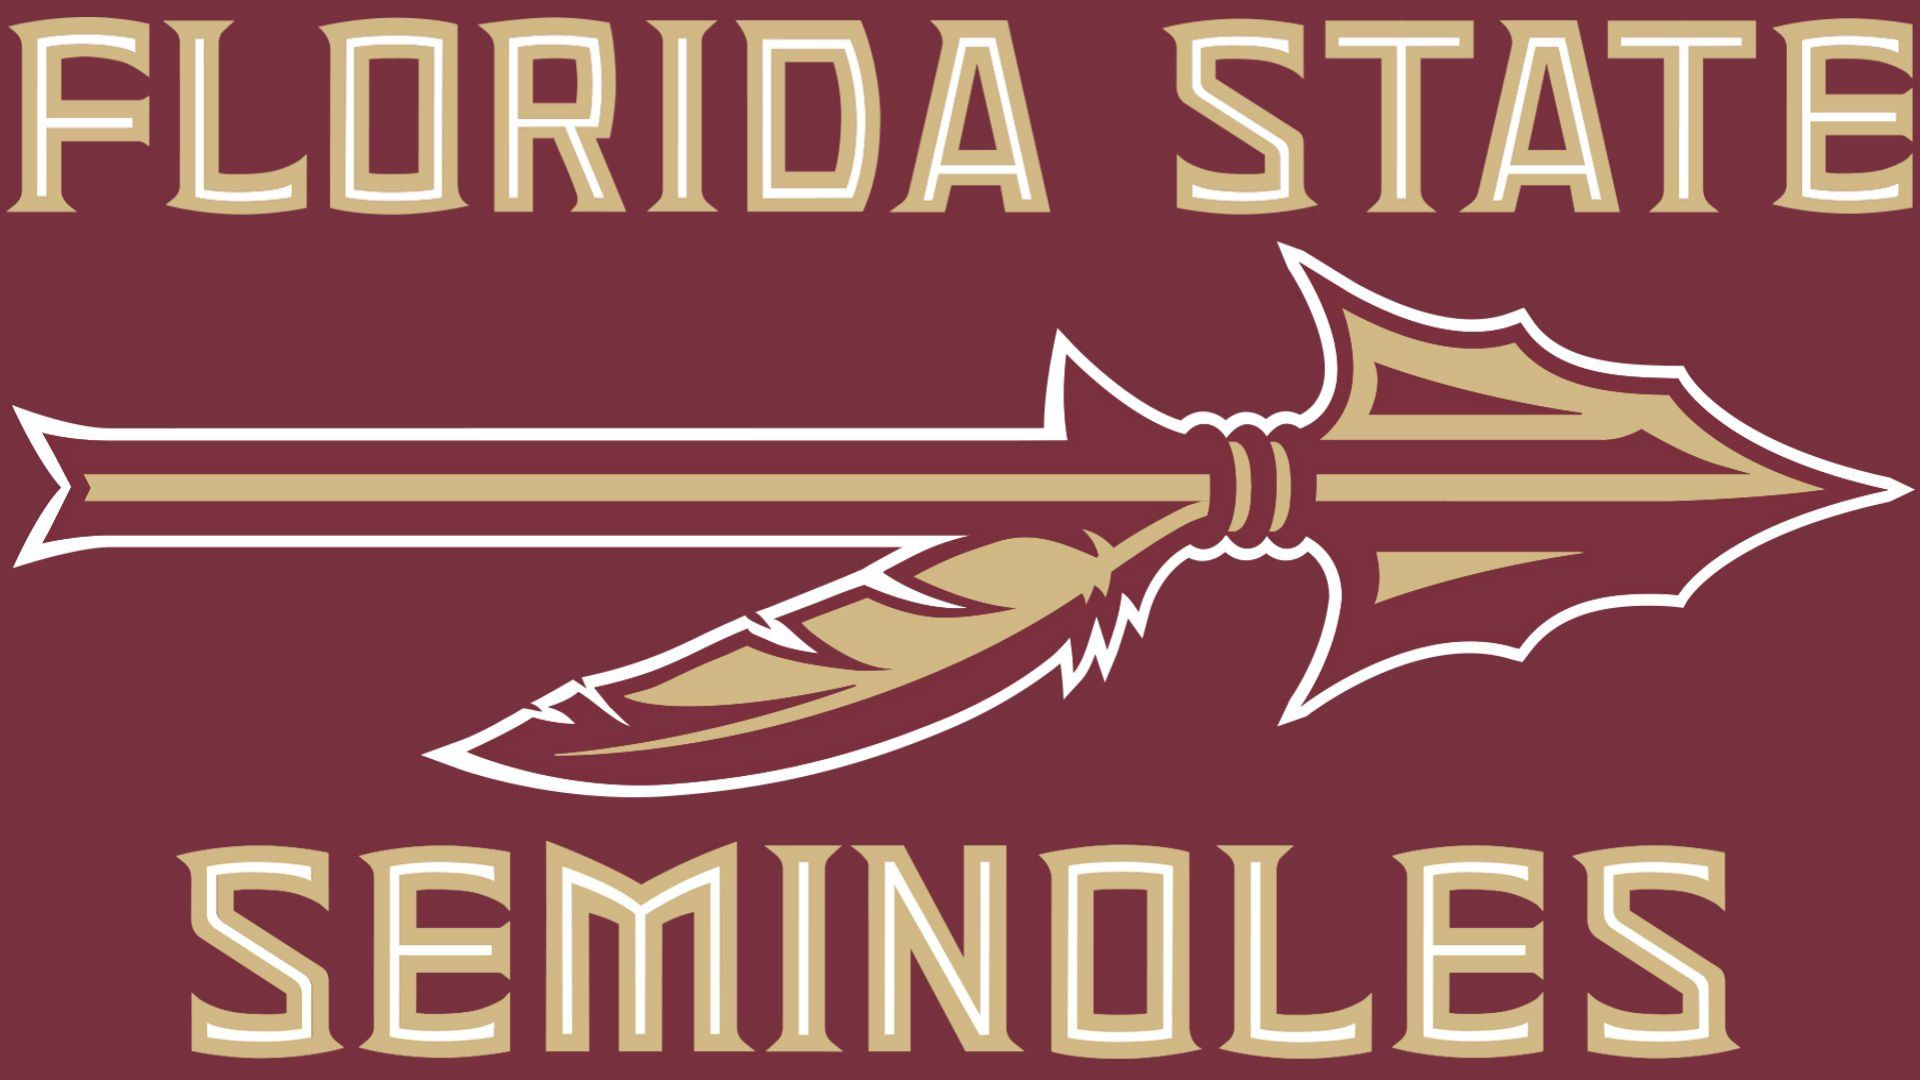 Florida state wallpapers wallpapers backgrounds images art florida state wallpapers wallpapers backgrounds images art voltagebd Choice Image